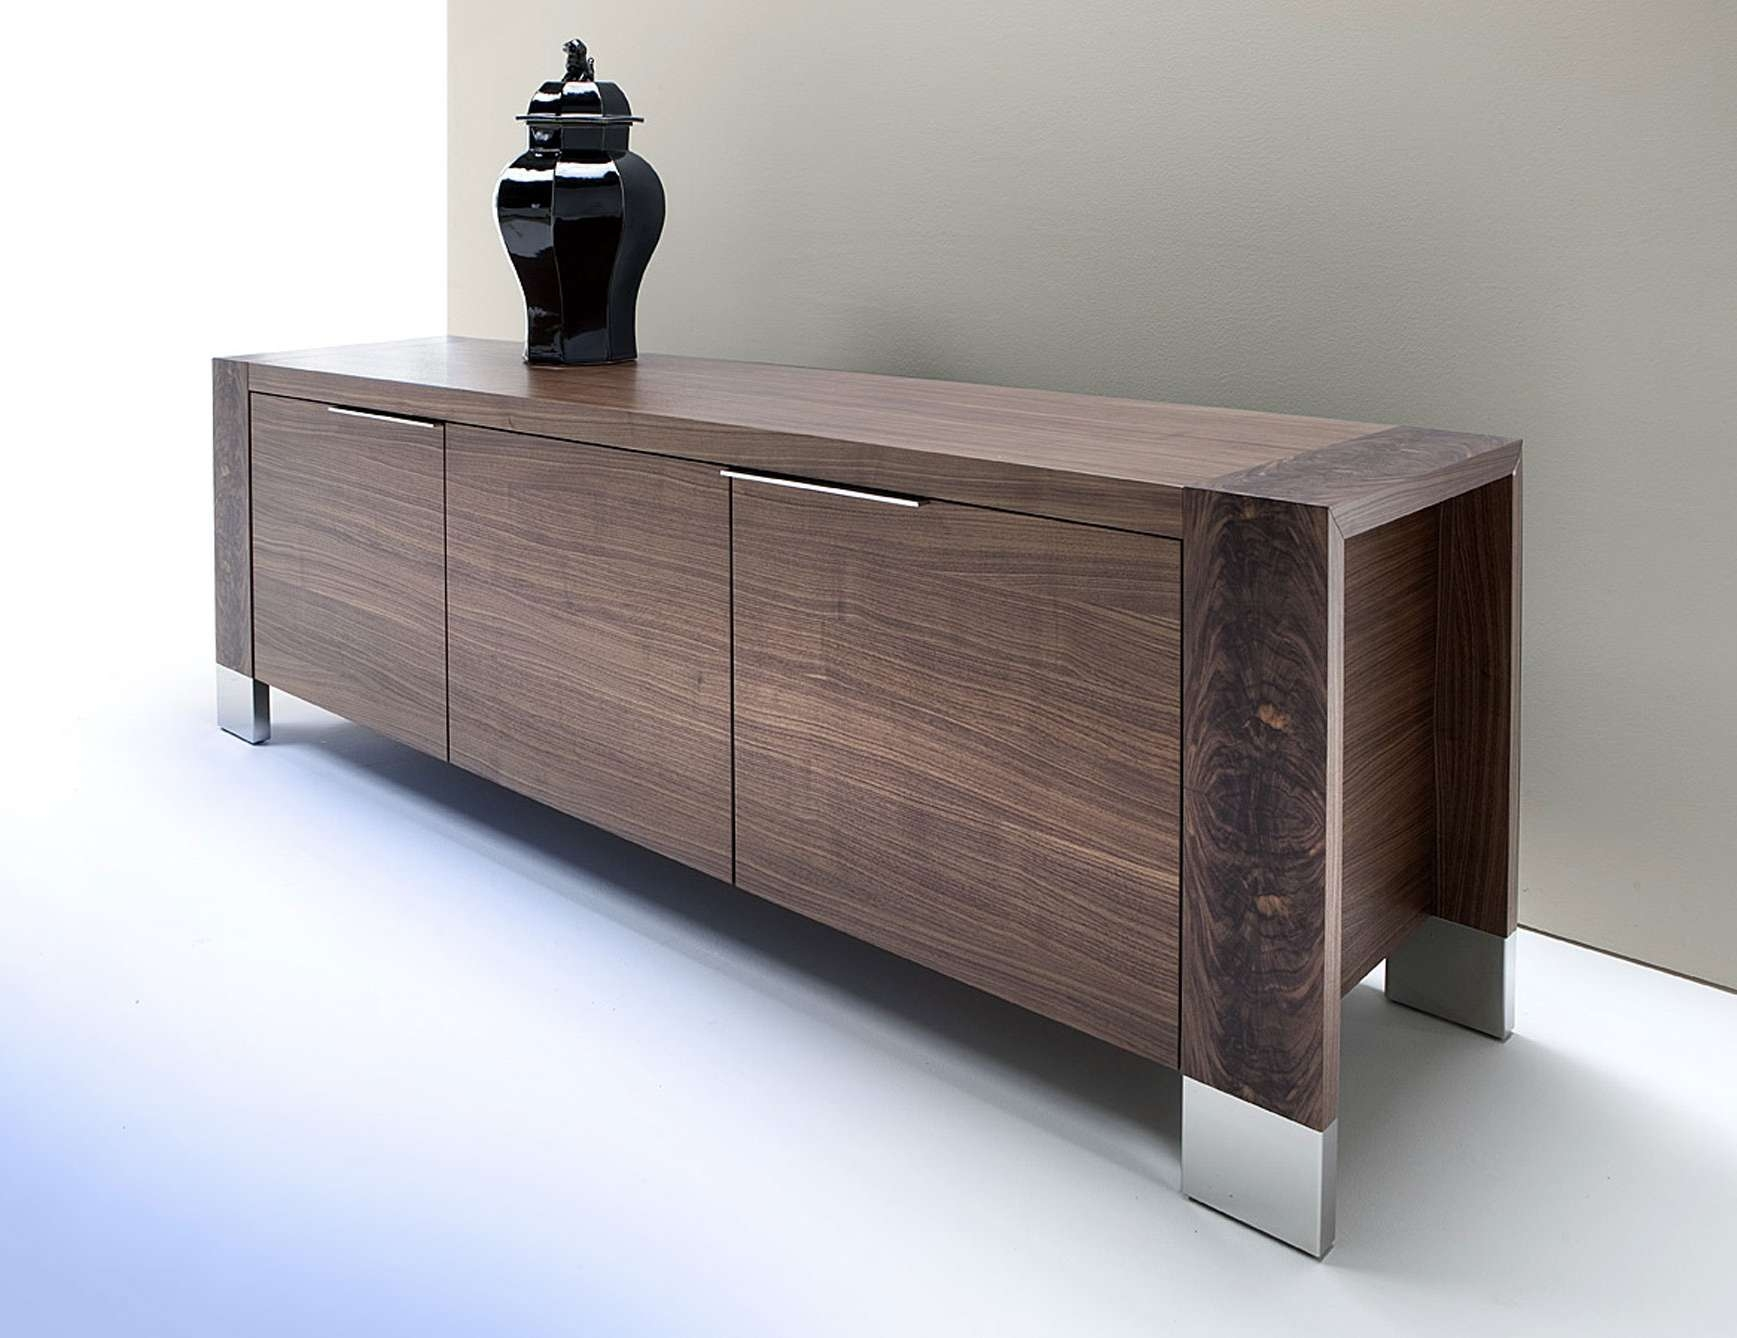 New Credenzas And Sideboards – Bjdgjy With Regard To Modern Buffet Sideboards (View 14 of 20)